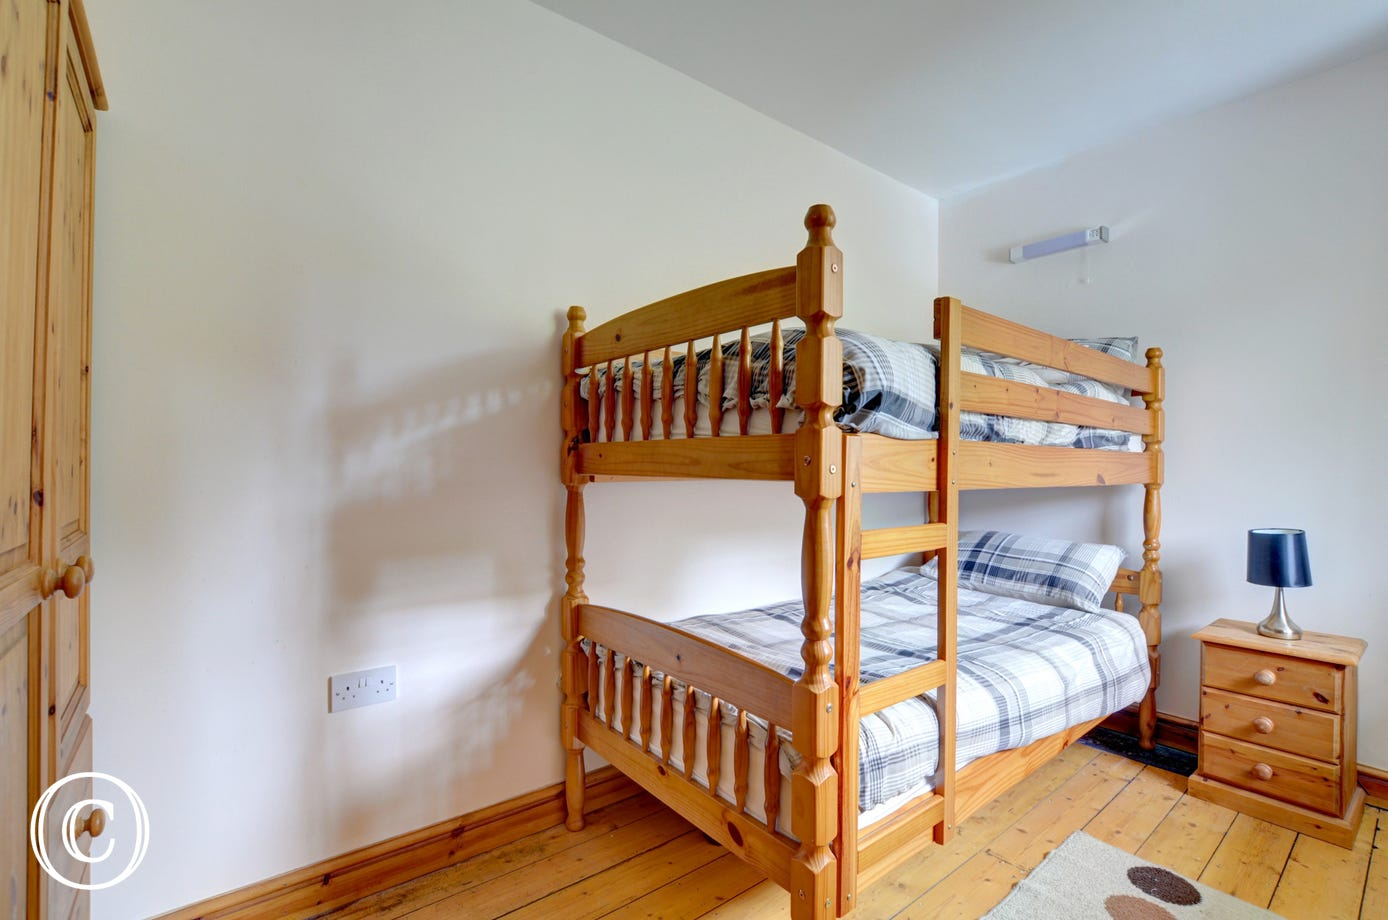 Bunk Bedroom with full sized bunks and pine furniture